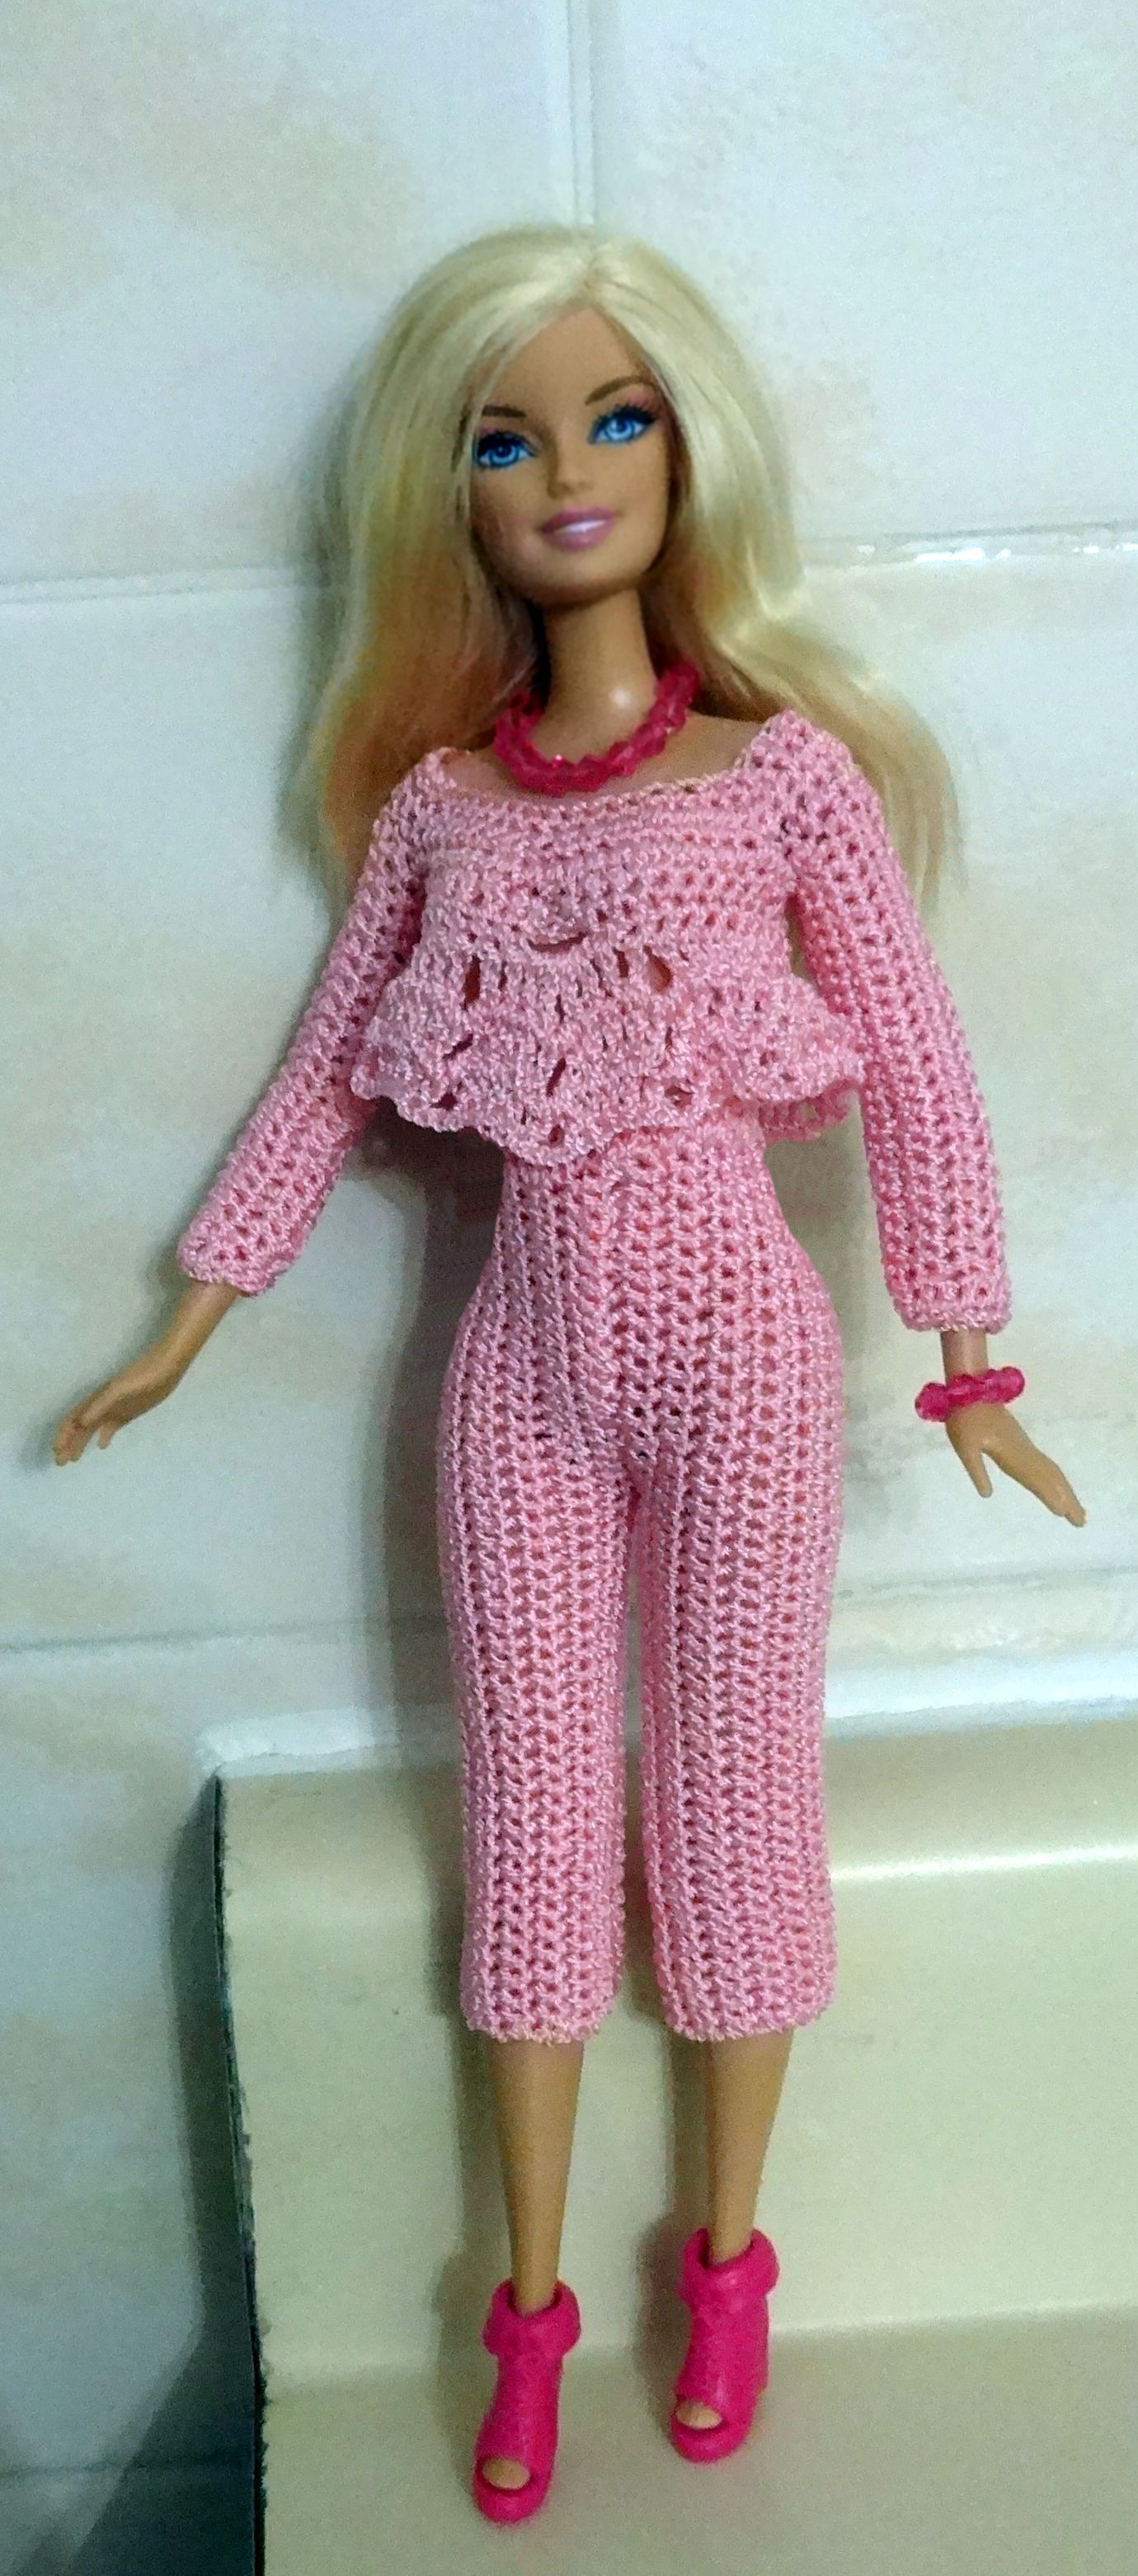 Roupa rosa doll clothes pinterest barbie clothes crochet upa rosa crochet barbie clothesdoll bankloansurffo Image collections